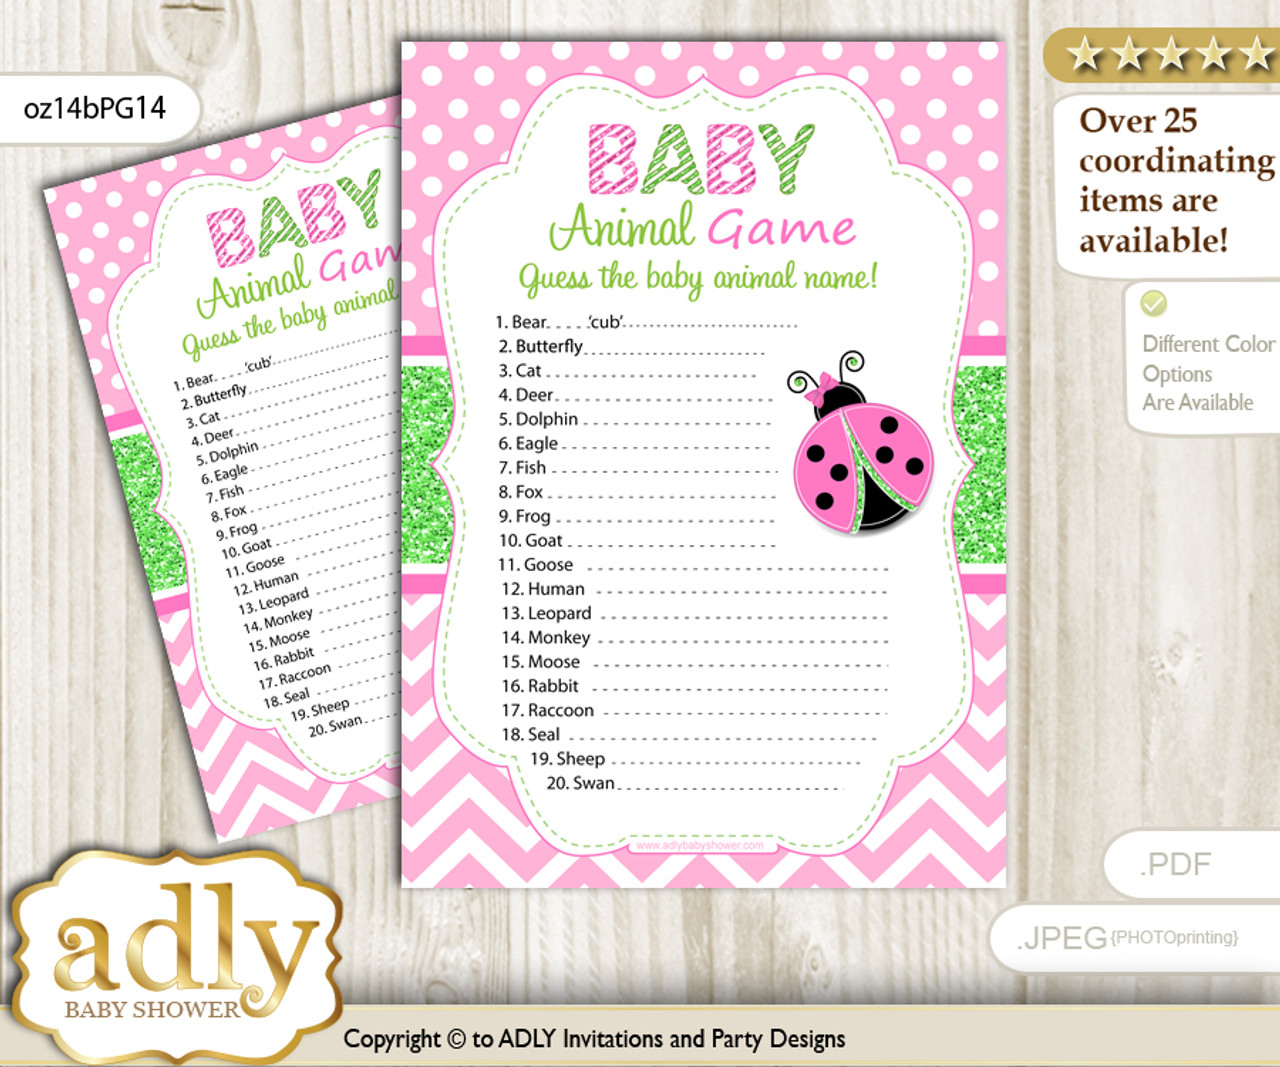 graphic relating to Baby Printable referred to as Printable Lovely Ladybug Kid Animal Recreation, Bet Names of Kid Pets Printable for Child Ladybug Shower, Crimson Environmentally friendly, Polka